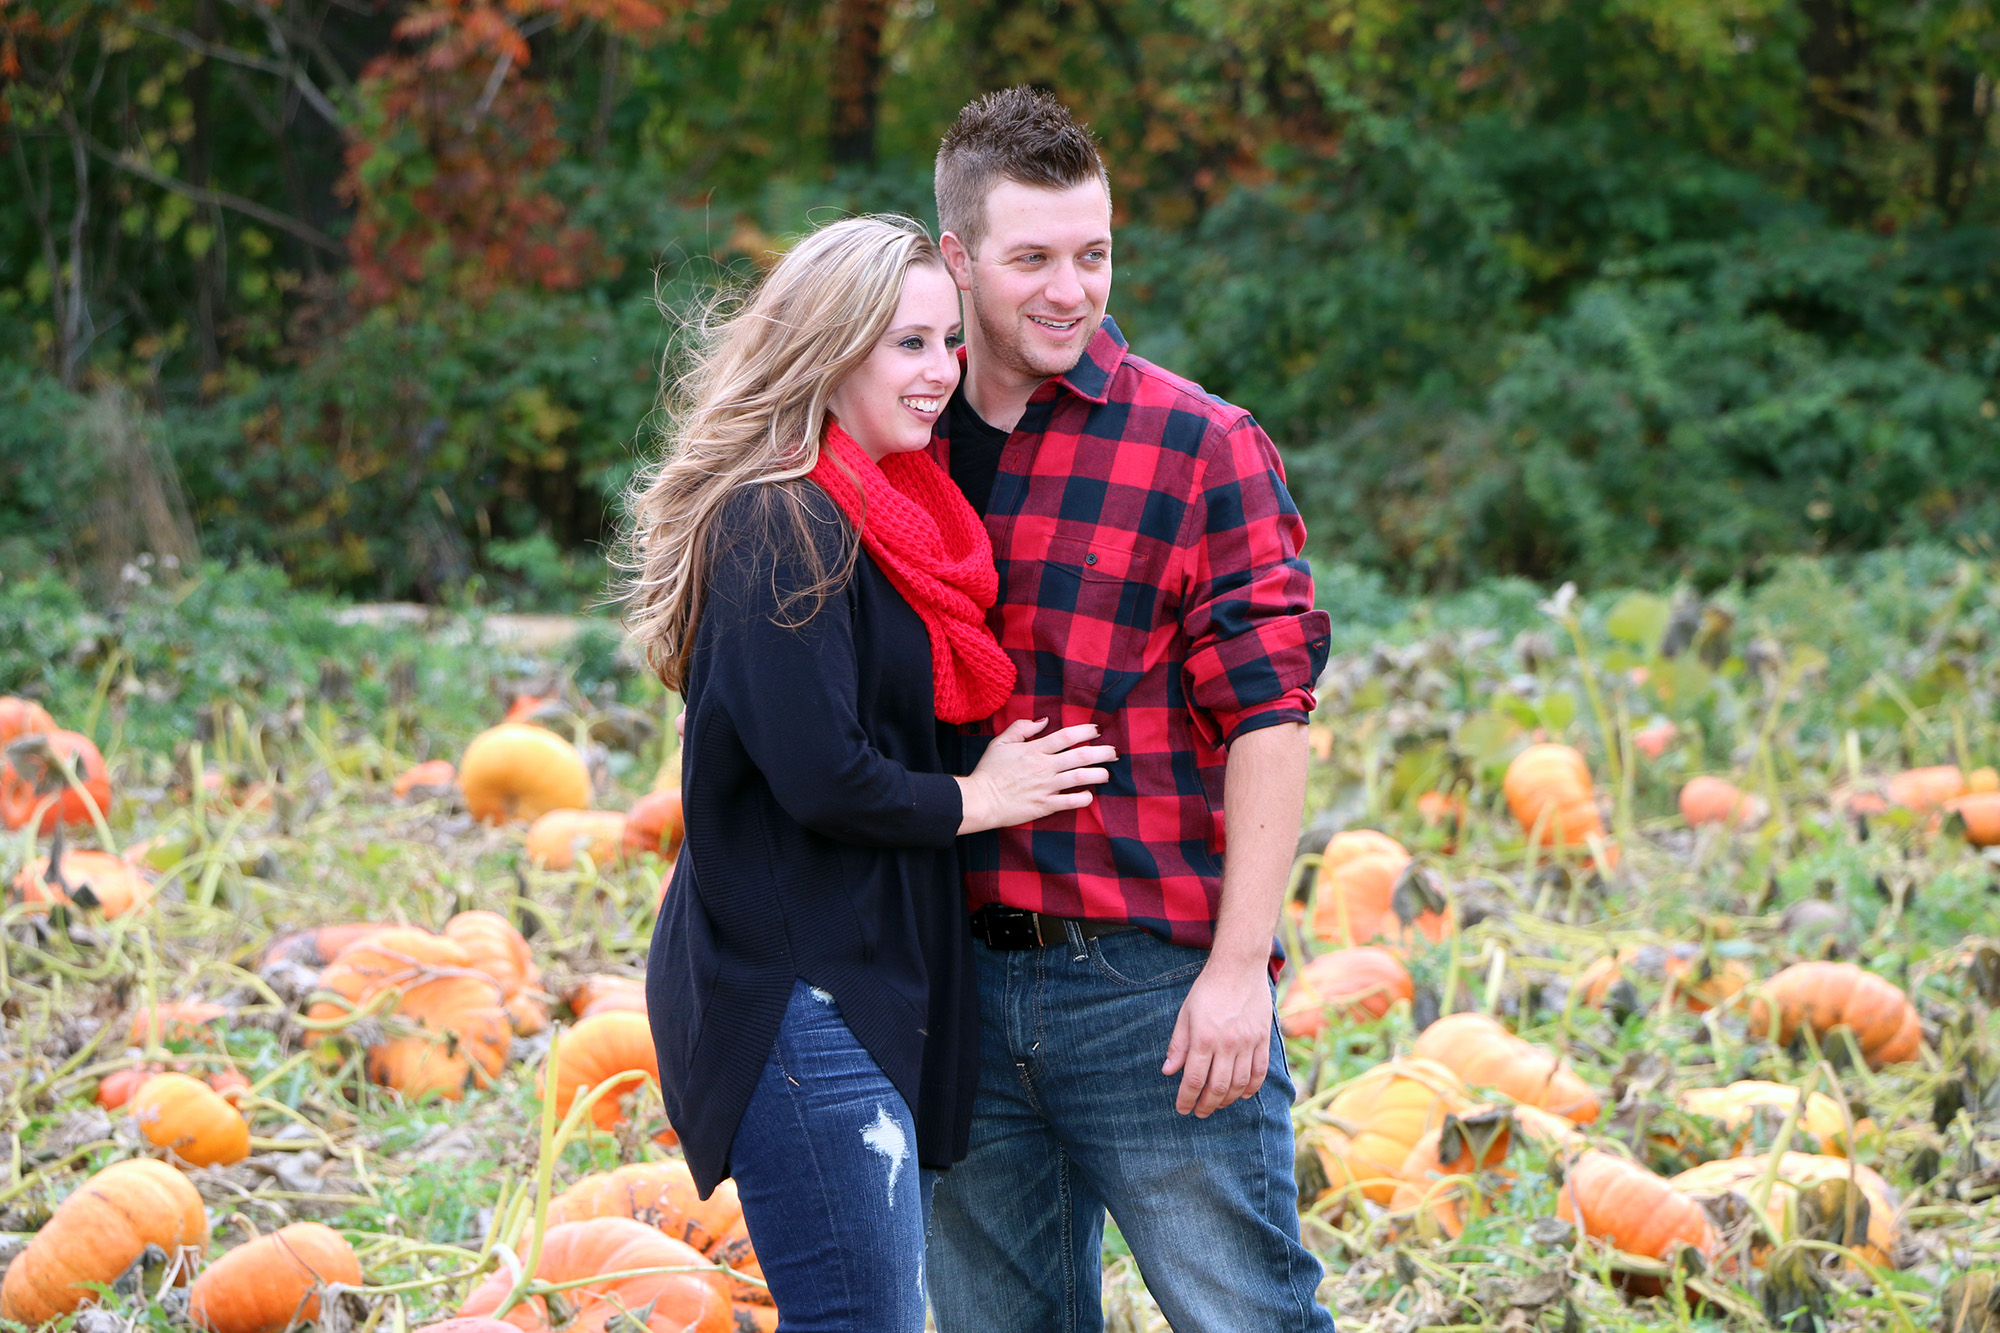 Fall Into Autumn Photoshoots!